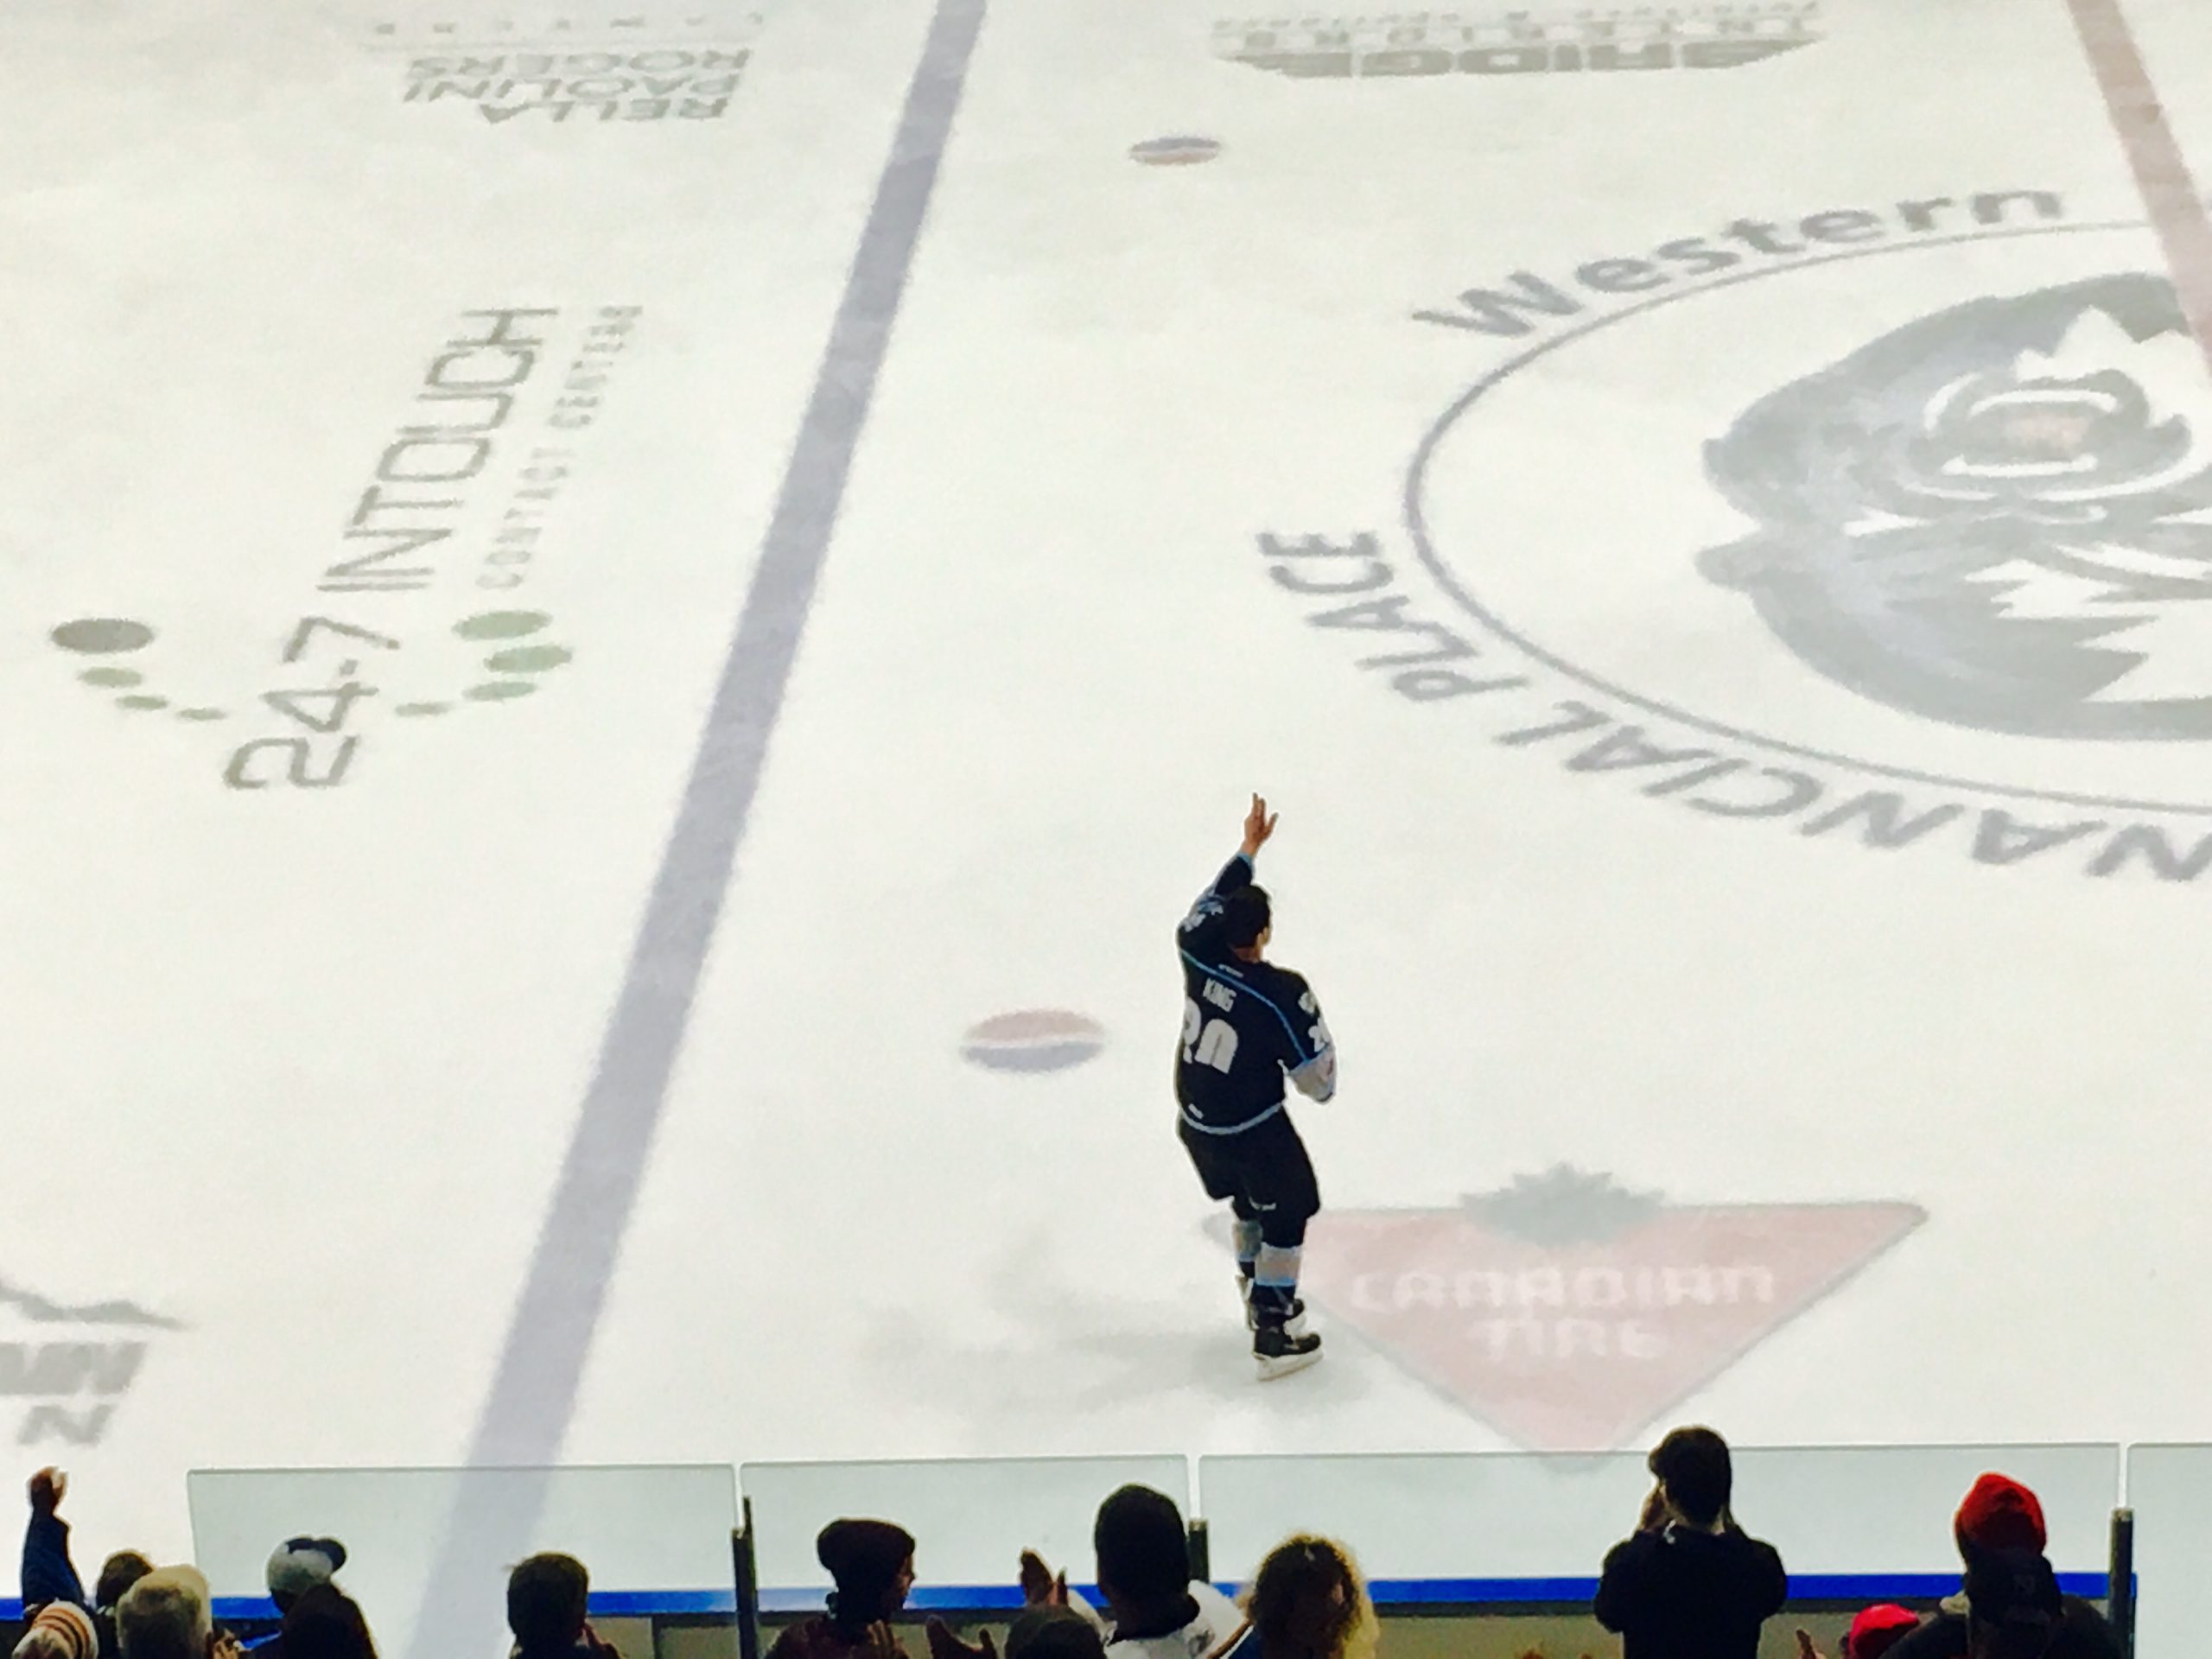 WHL: ICE defeat Hitmen 5-1 in Teddy Bear Toss game